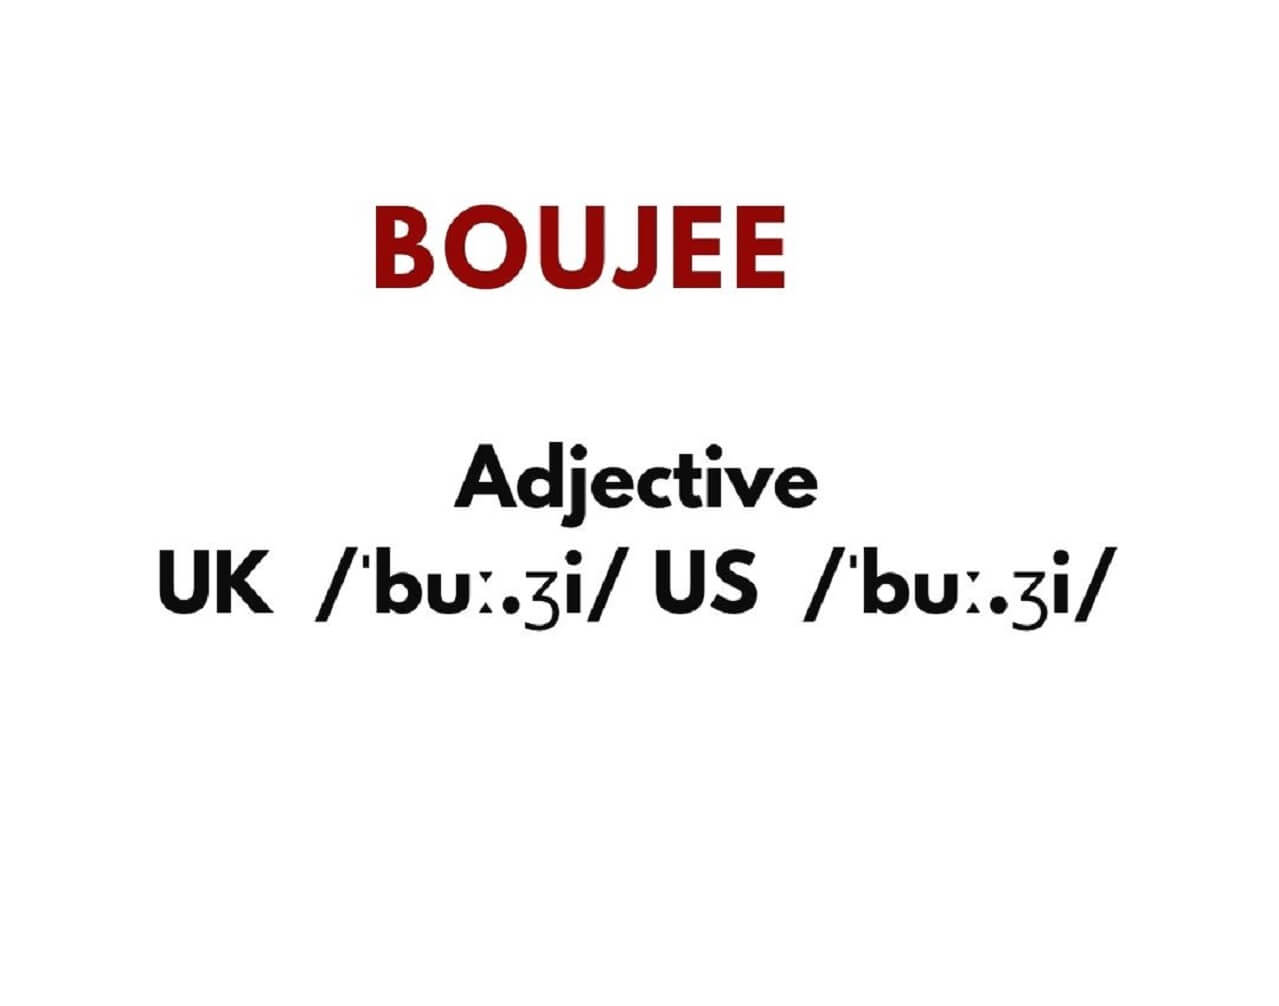 The true meaning of the slang word 'boujee'